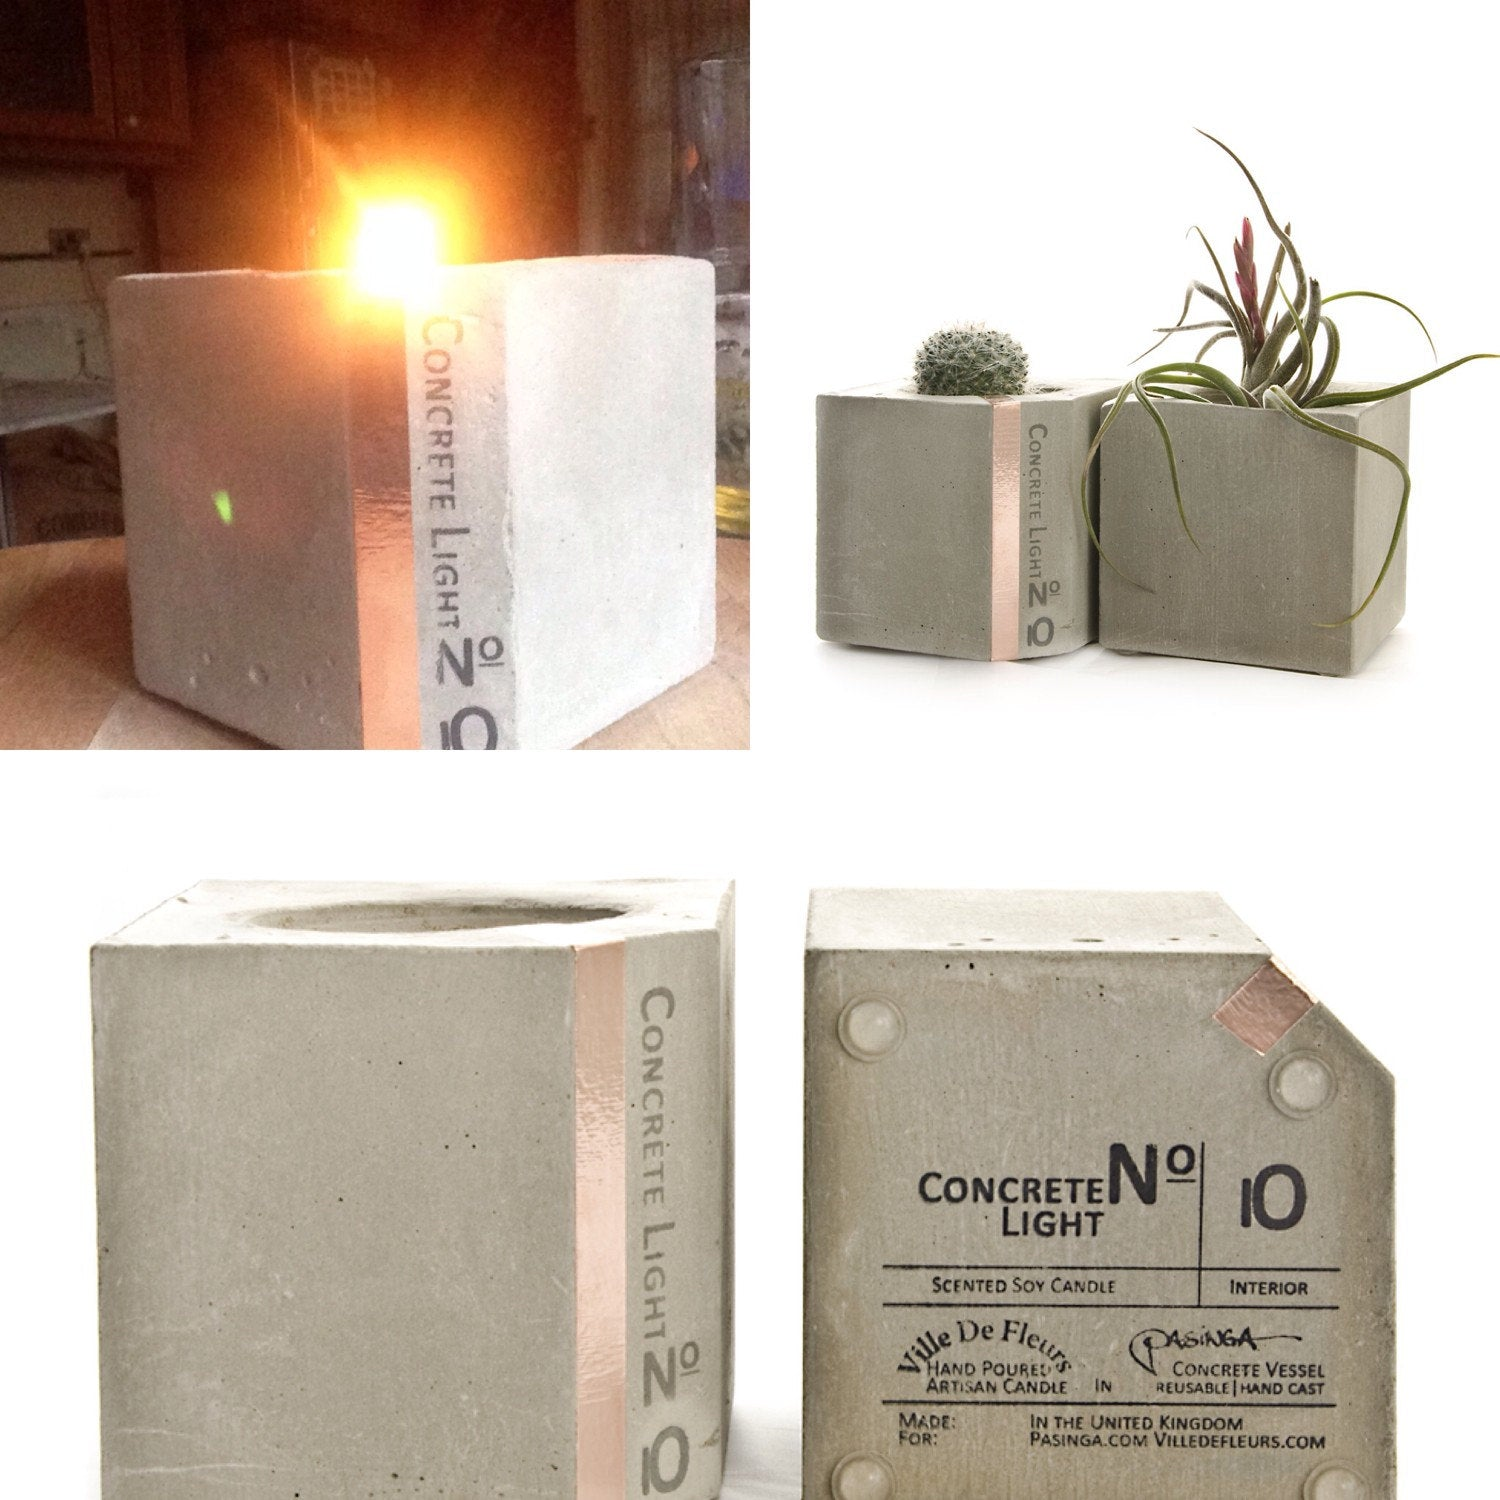 Concrete Candle Chocolate macaroon